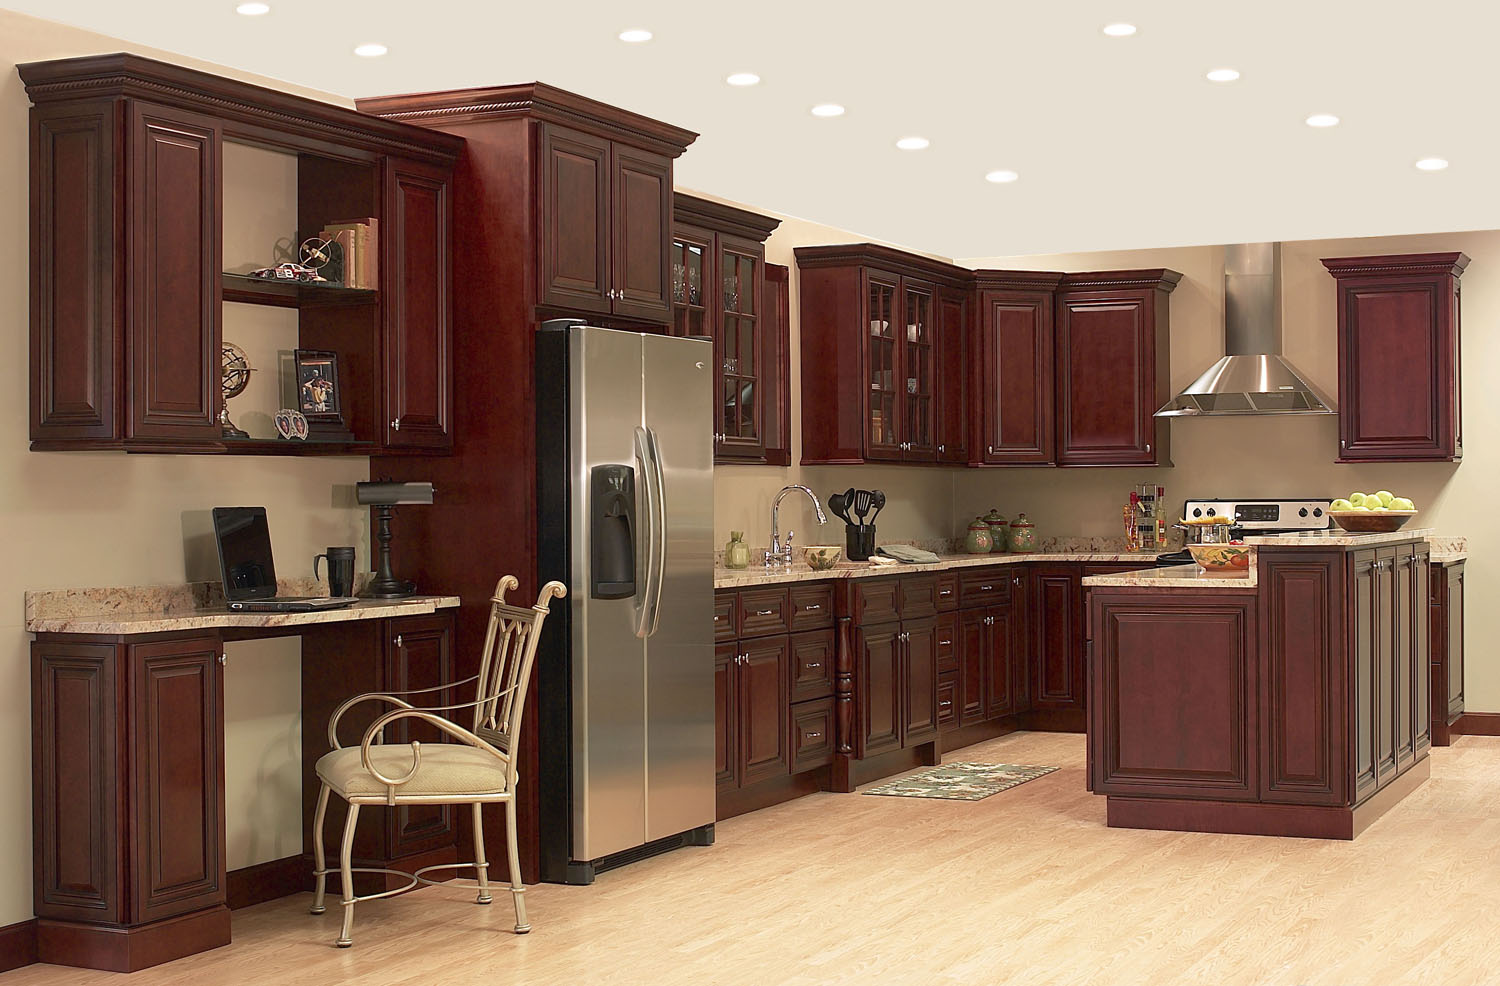 Wood kitchen cabinets ready to assemble for Canac kitchens kitchen cabinets